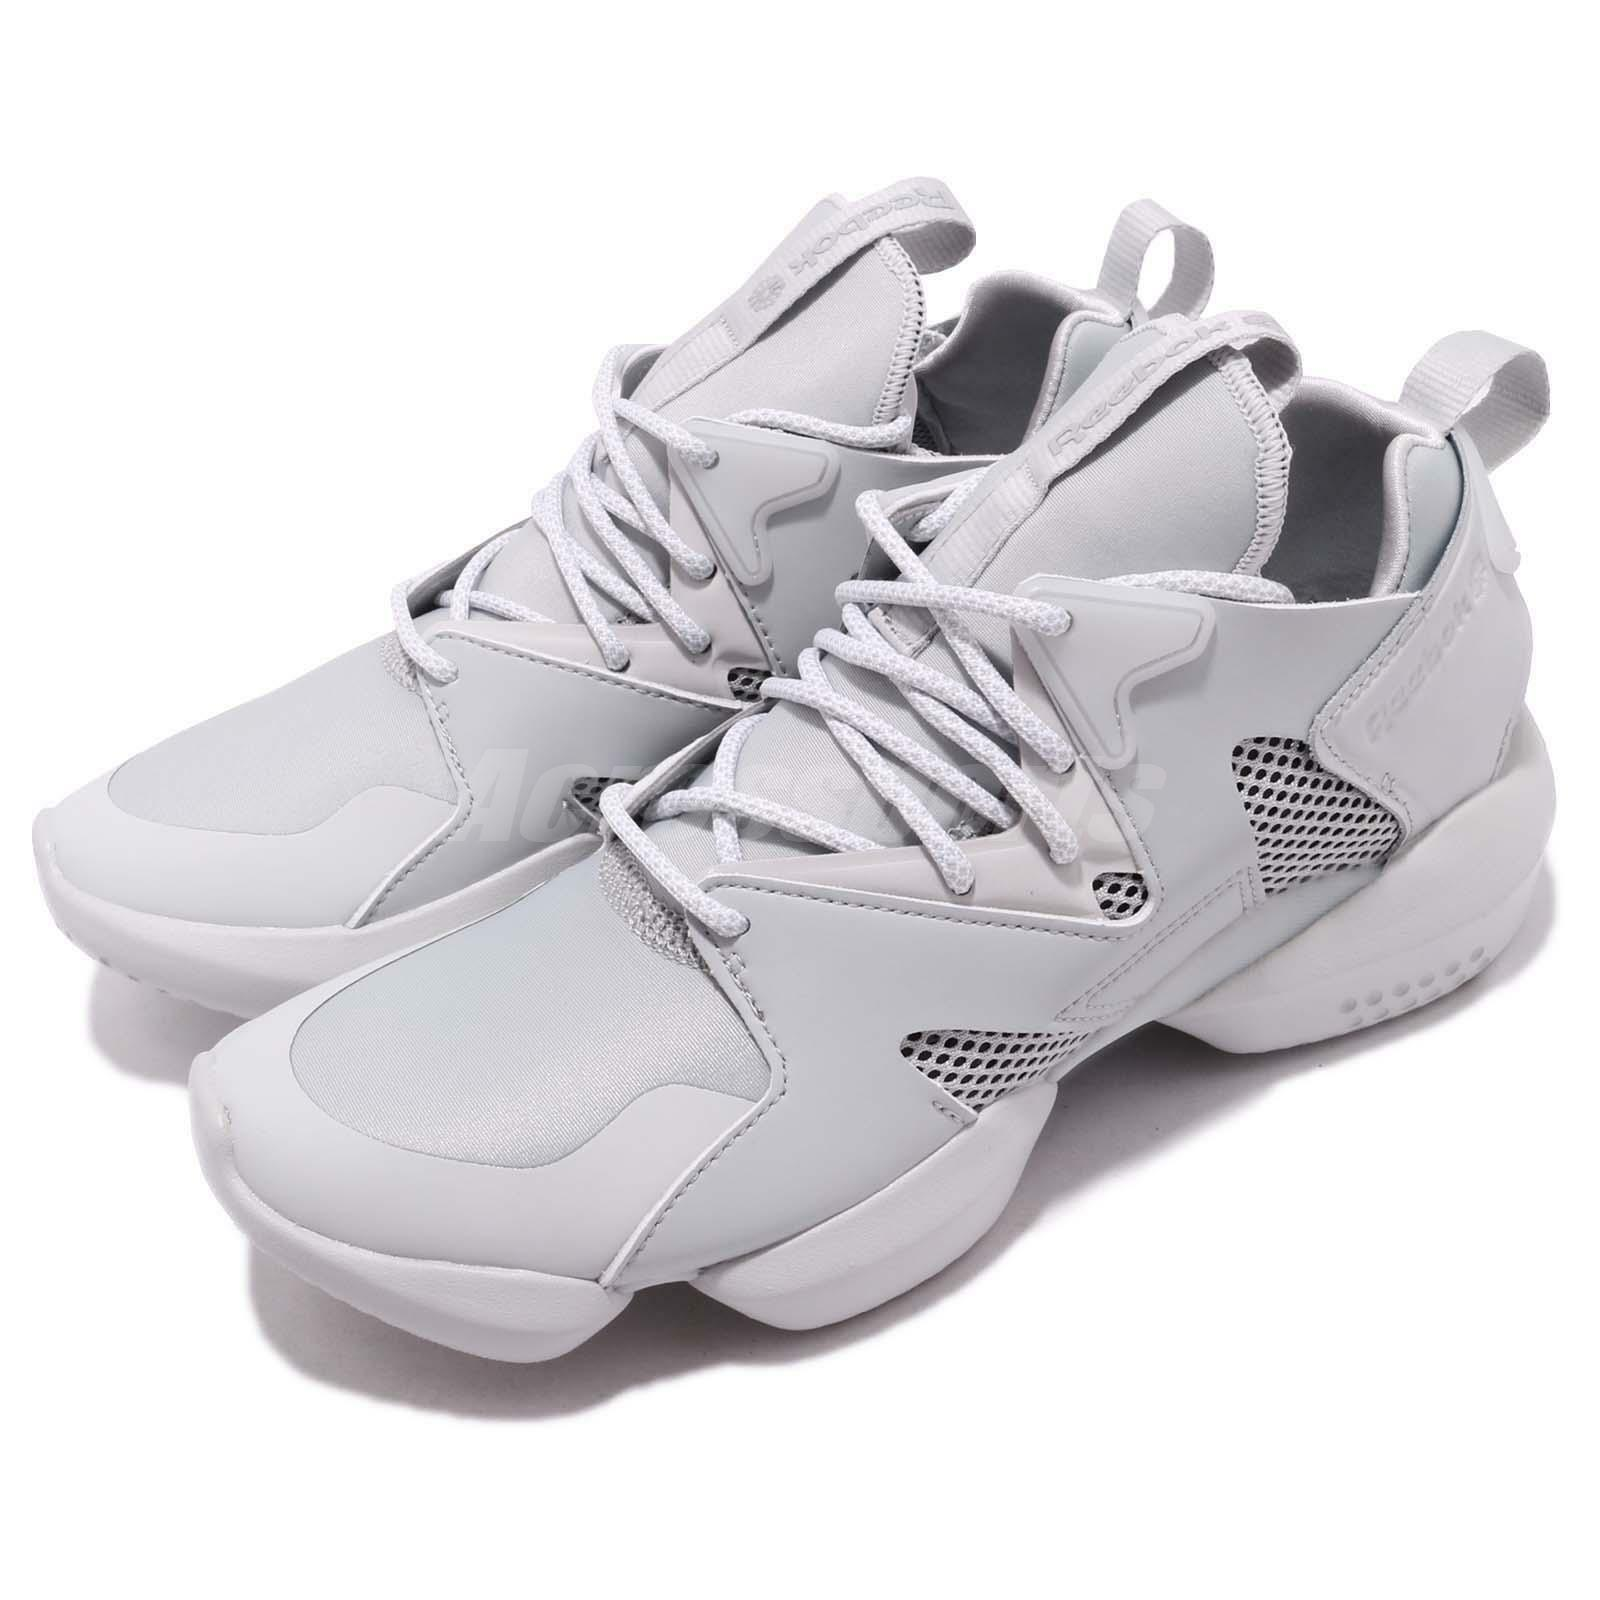 Reebok 3D OP. Lite Grey Bold Looks Fashion Mens Lifestyle Shoes Sneakers CN3826